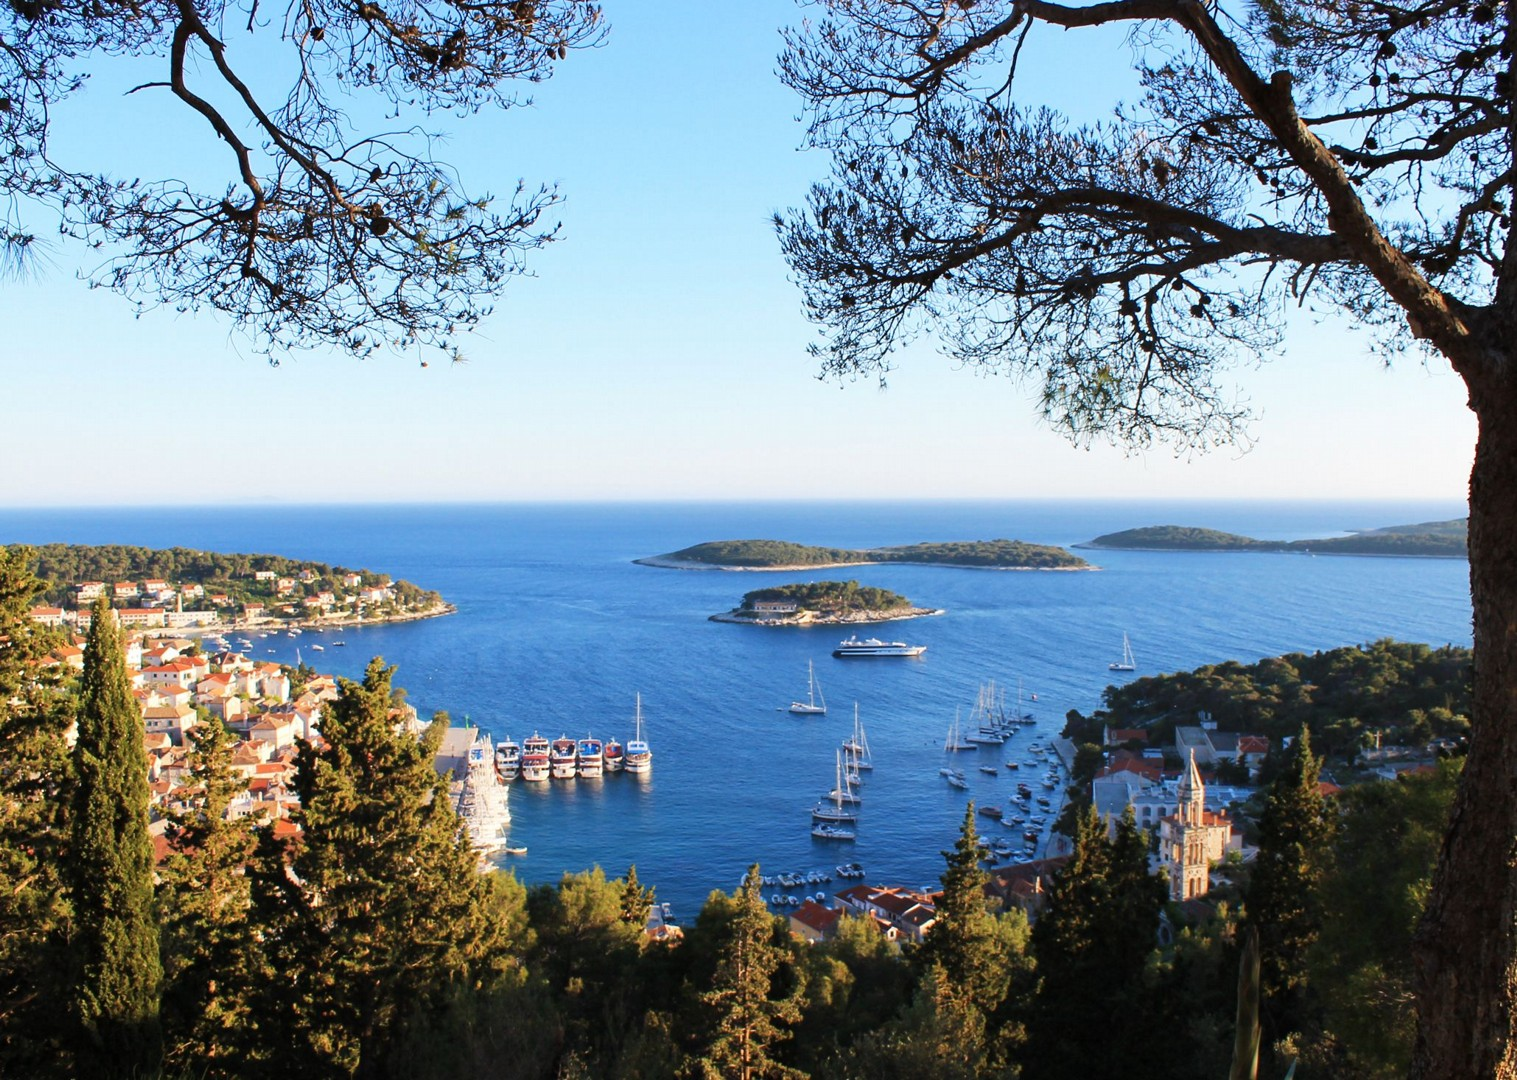 explore-the-islands-of-hvar-and-solta-cycling-holiday.jpg - Croatia - Southern Dalmatia - Bike and Boat Holiday - Leisure Cycling